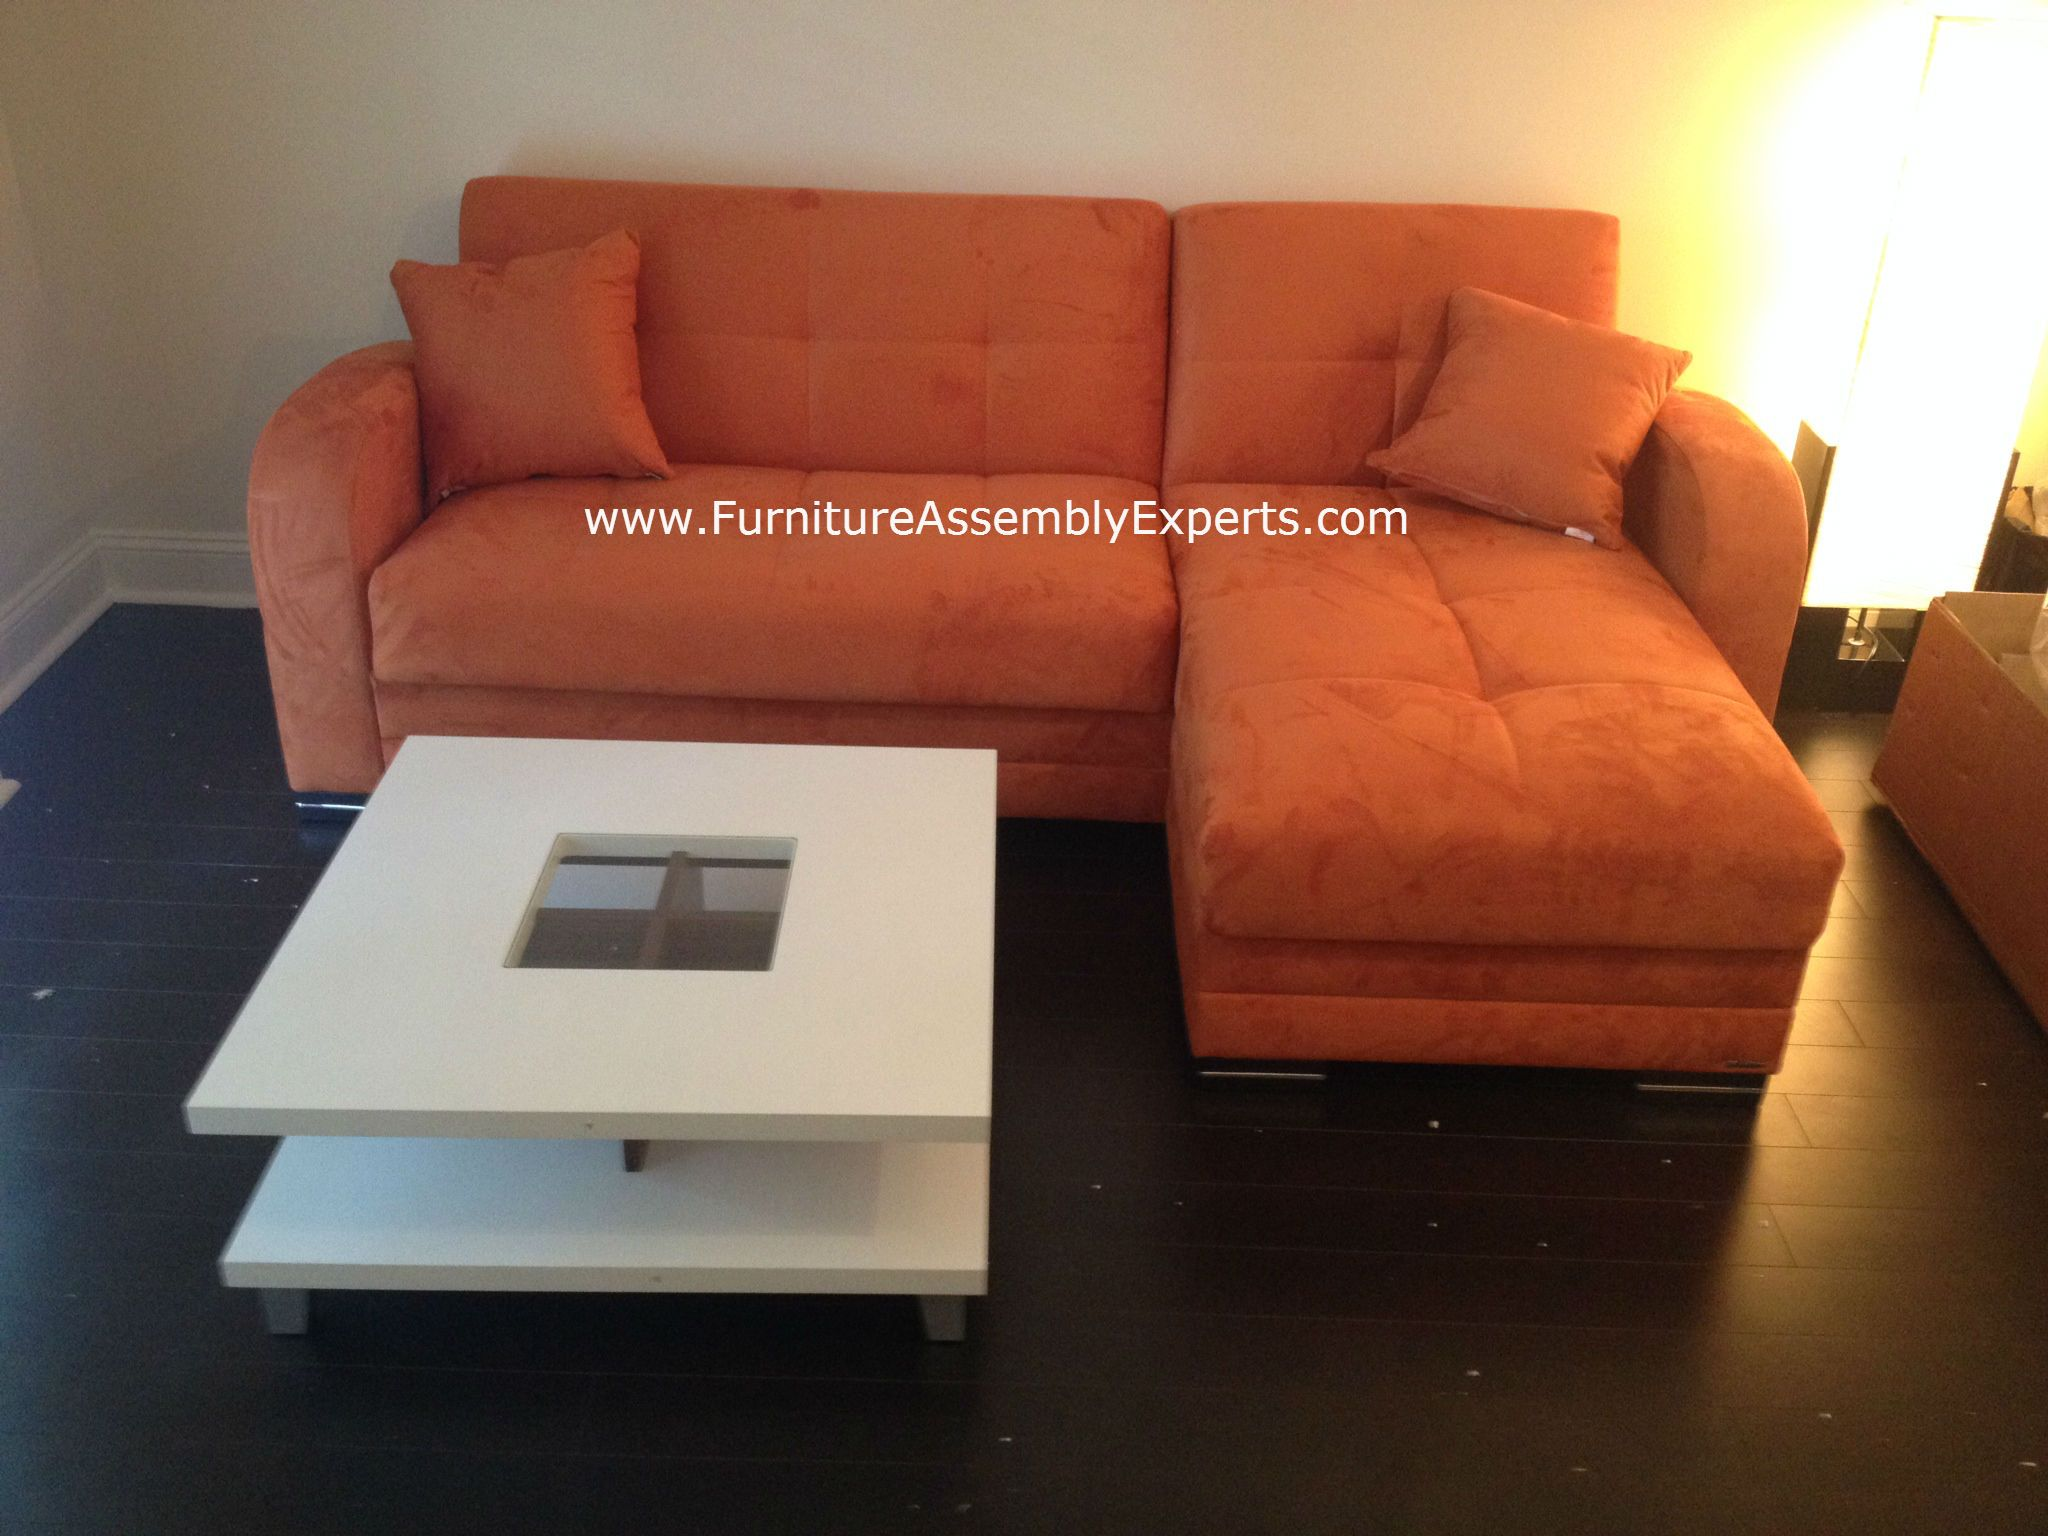 Professional Furniture Assemblers To Assemble And Install Your Wayfair  Furniture In Washington DC, Maryland And Virginia.